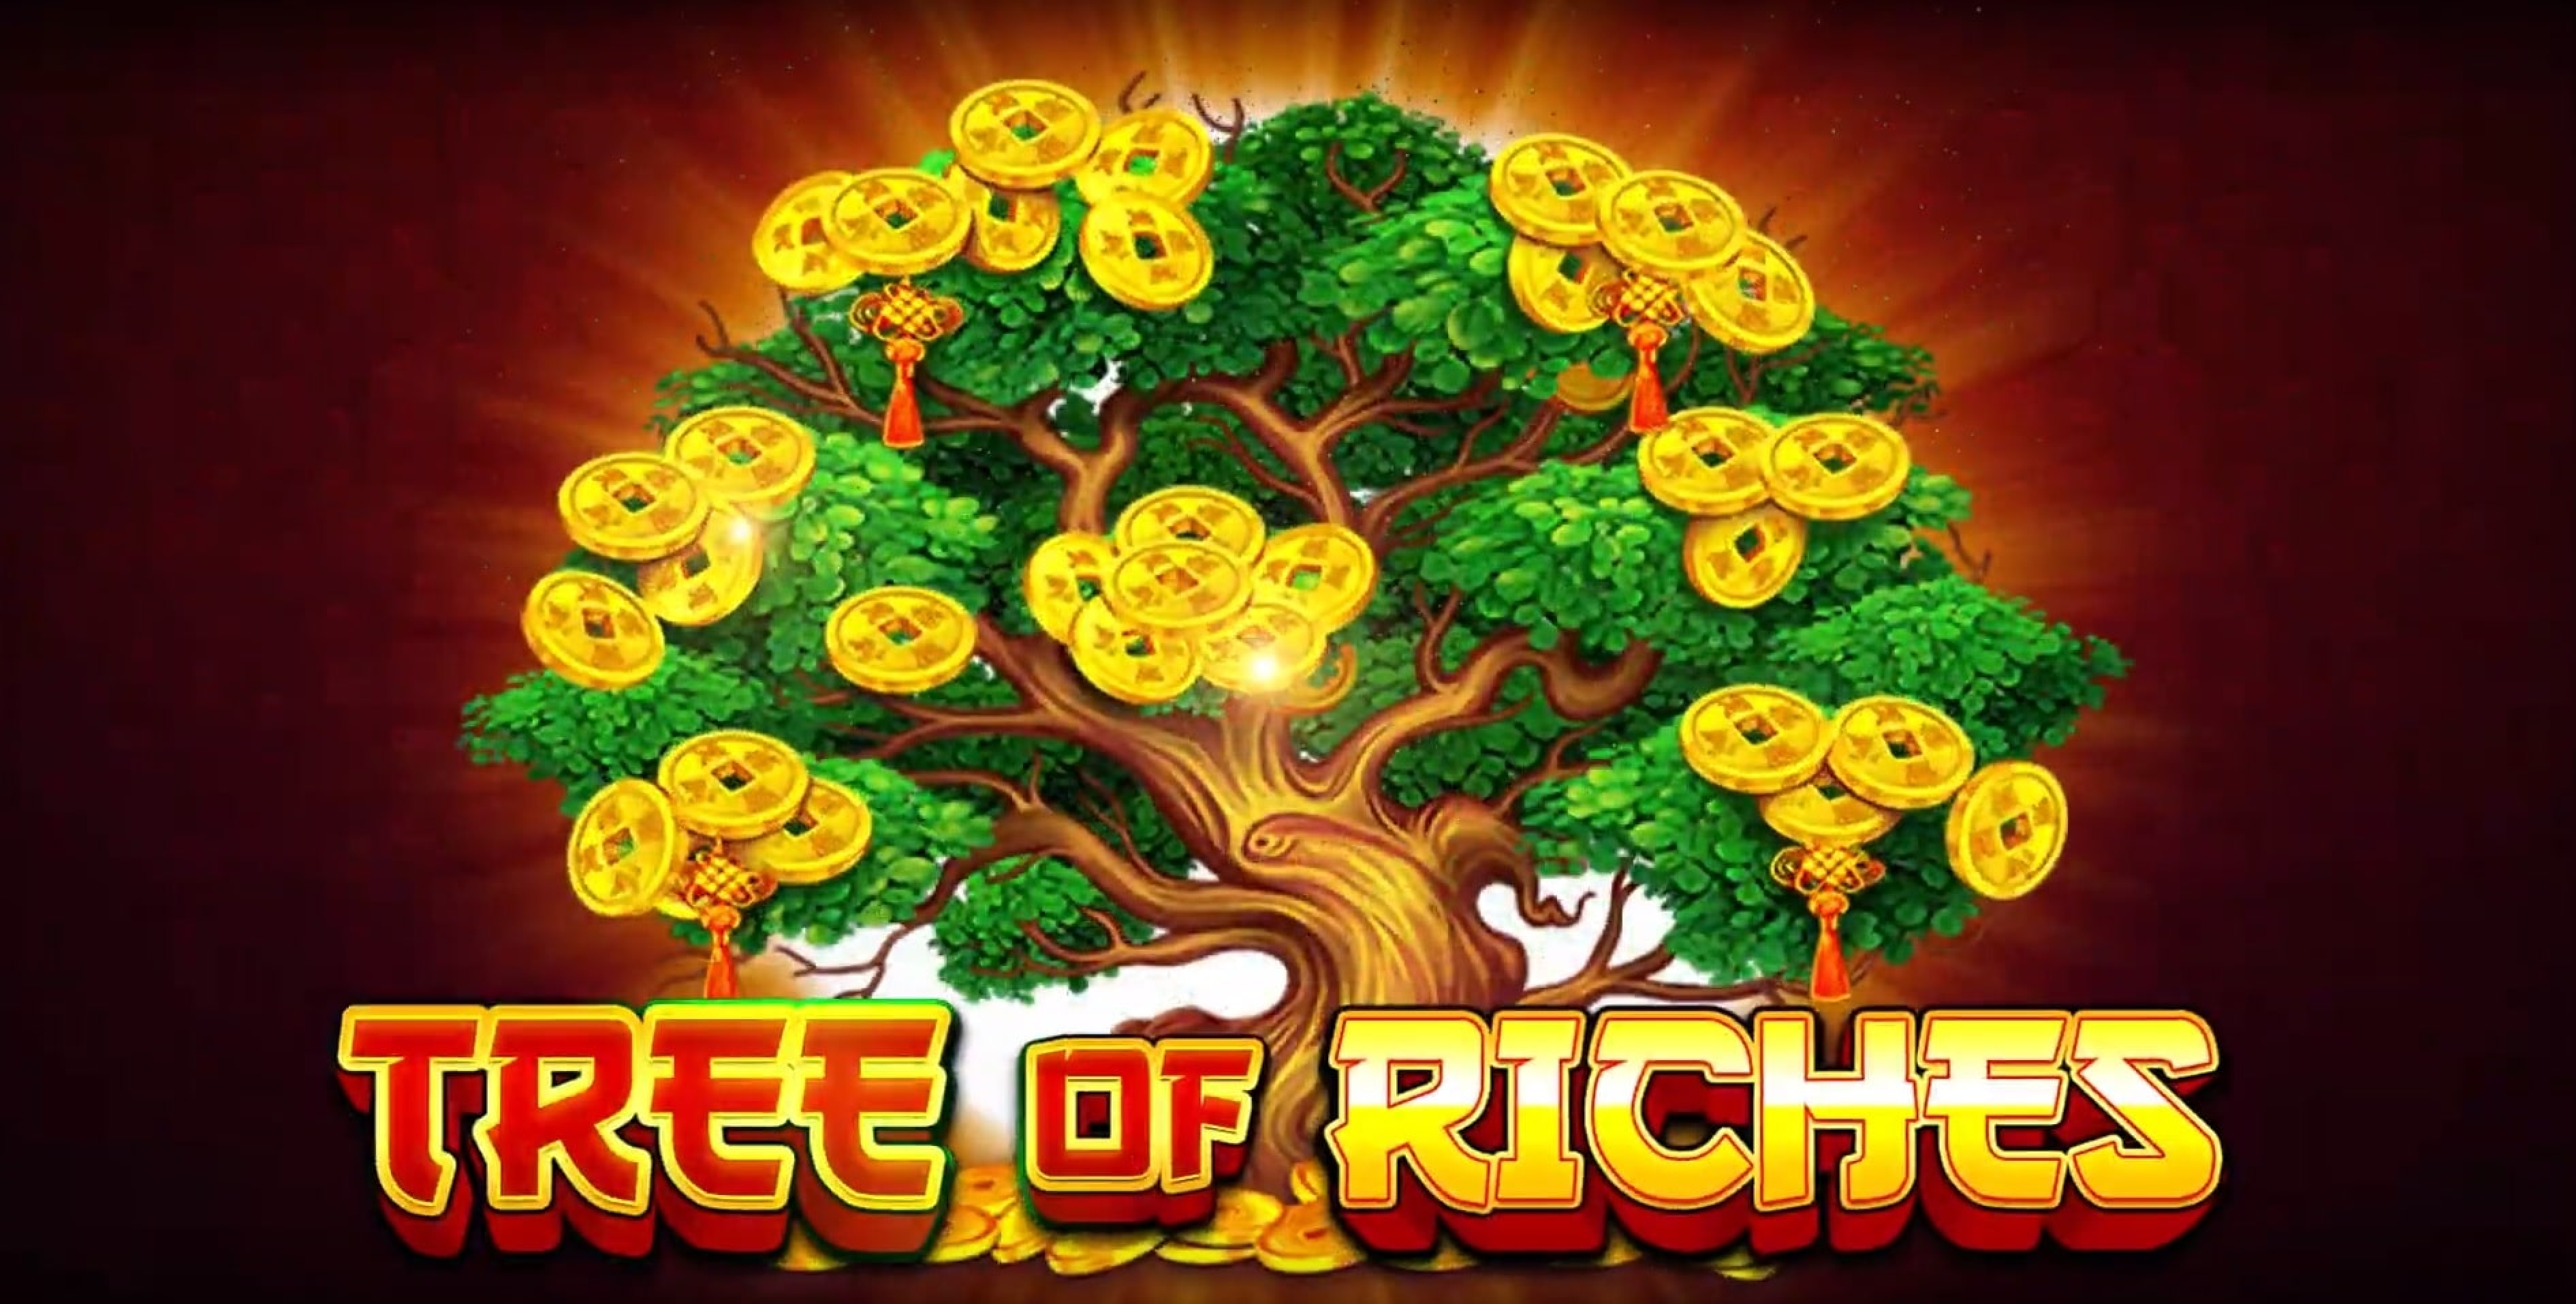 The Tree of Riches Online Slot Demo Game by Pragmatic Play